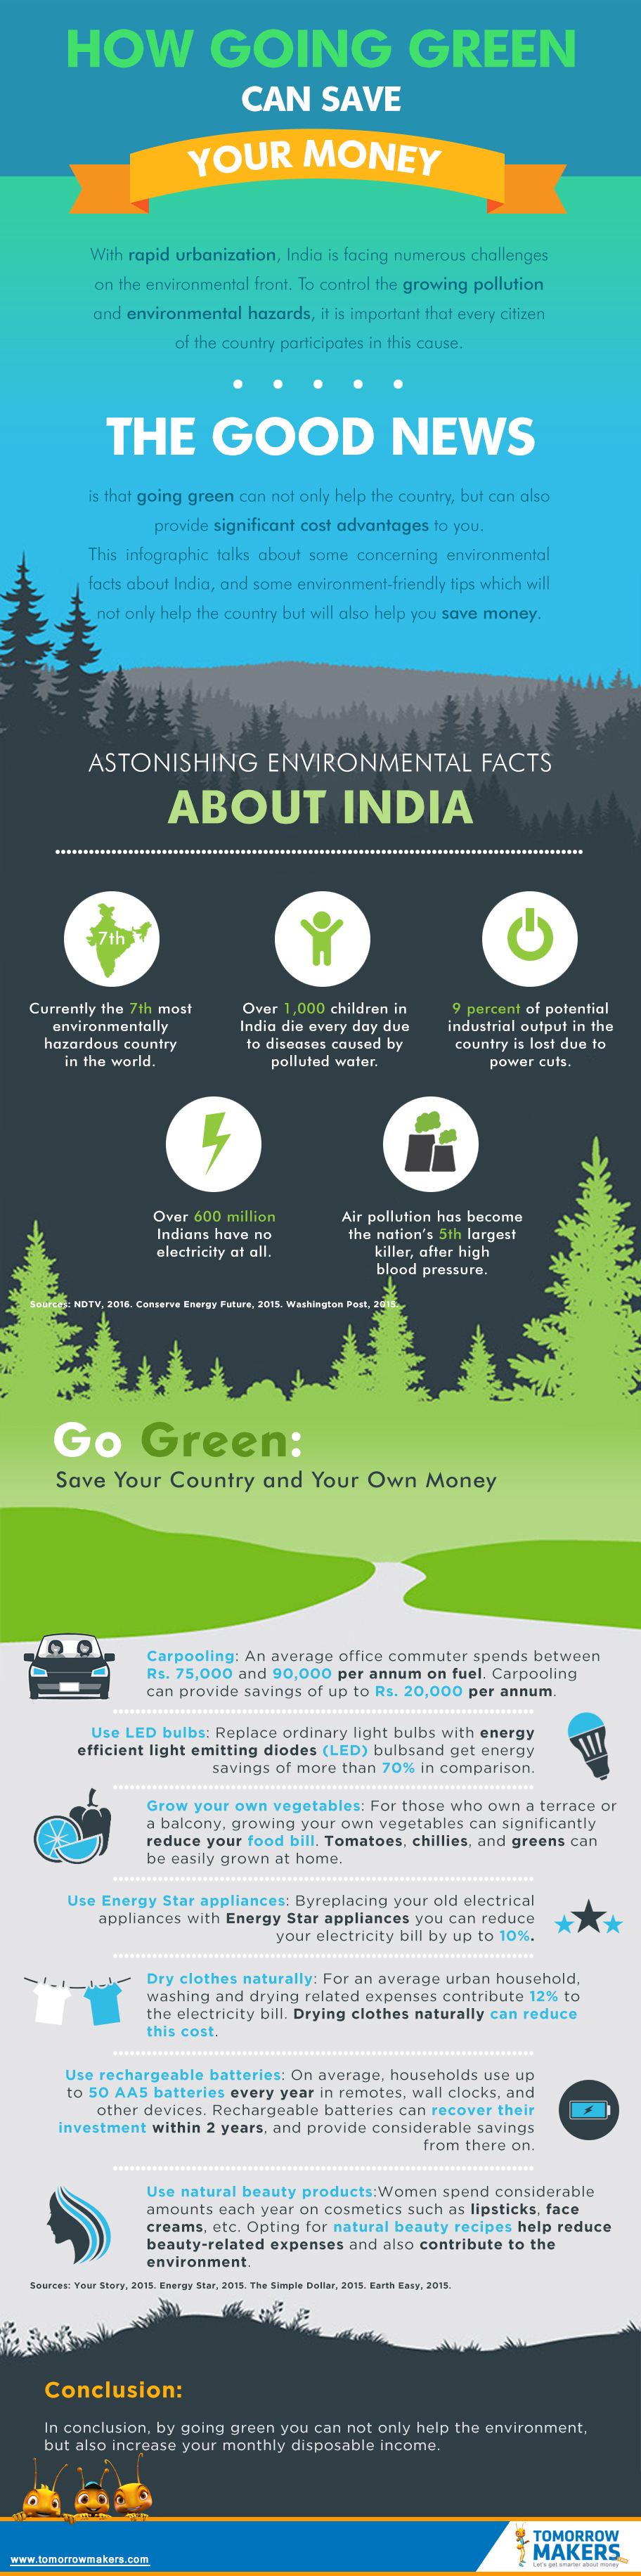 How going green can save your money